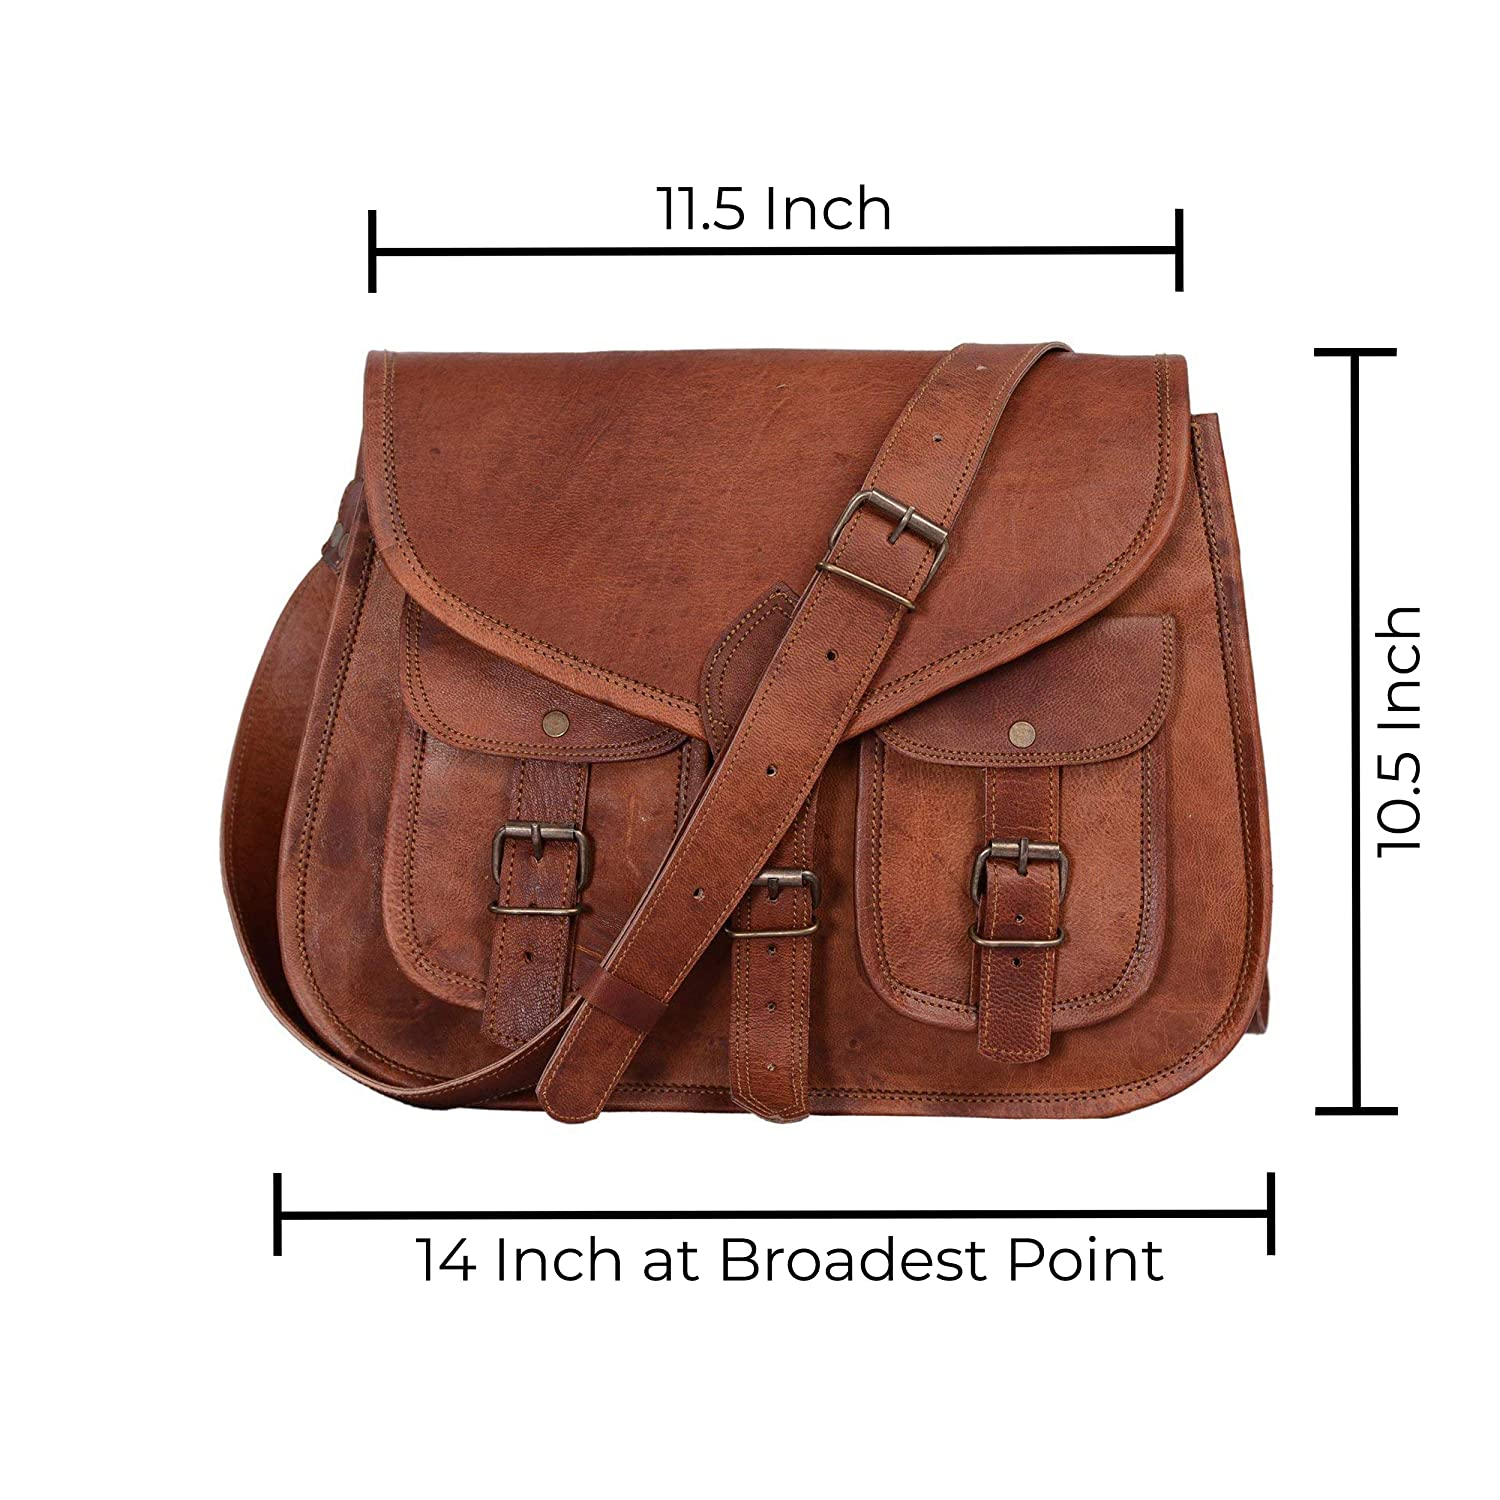 87373d4a4d13 KPL 14 Inch Leather Purse Women Shoulder Bag Crossbody Satchel Ladies Tote  Travel Purse Genuine Leather (Tan Brown)